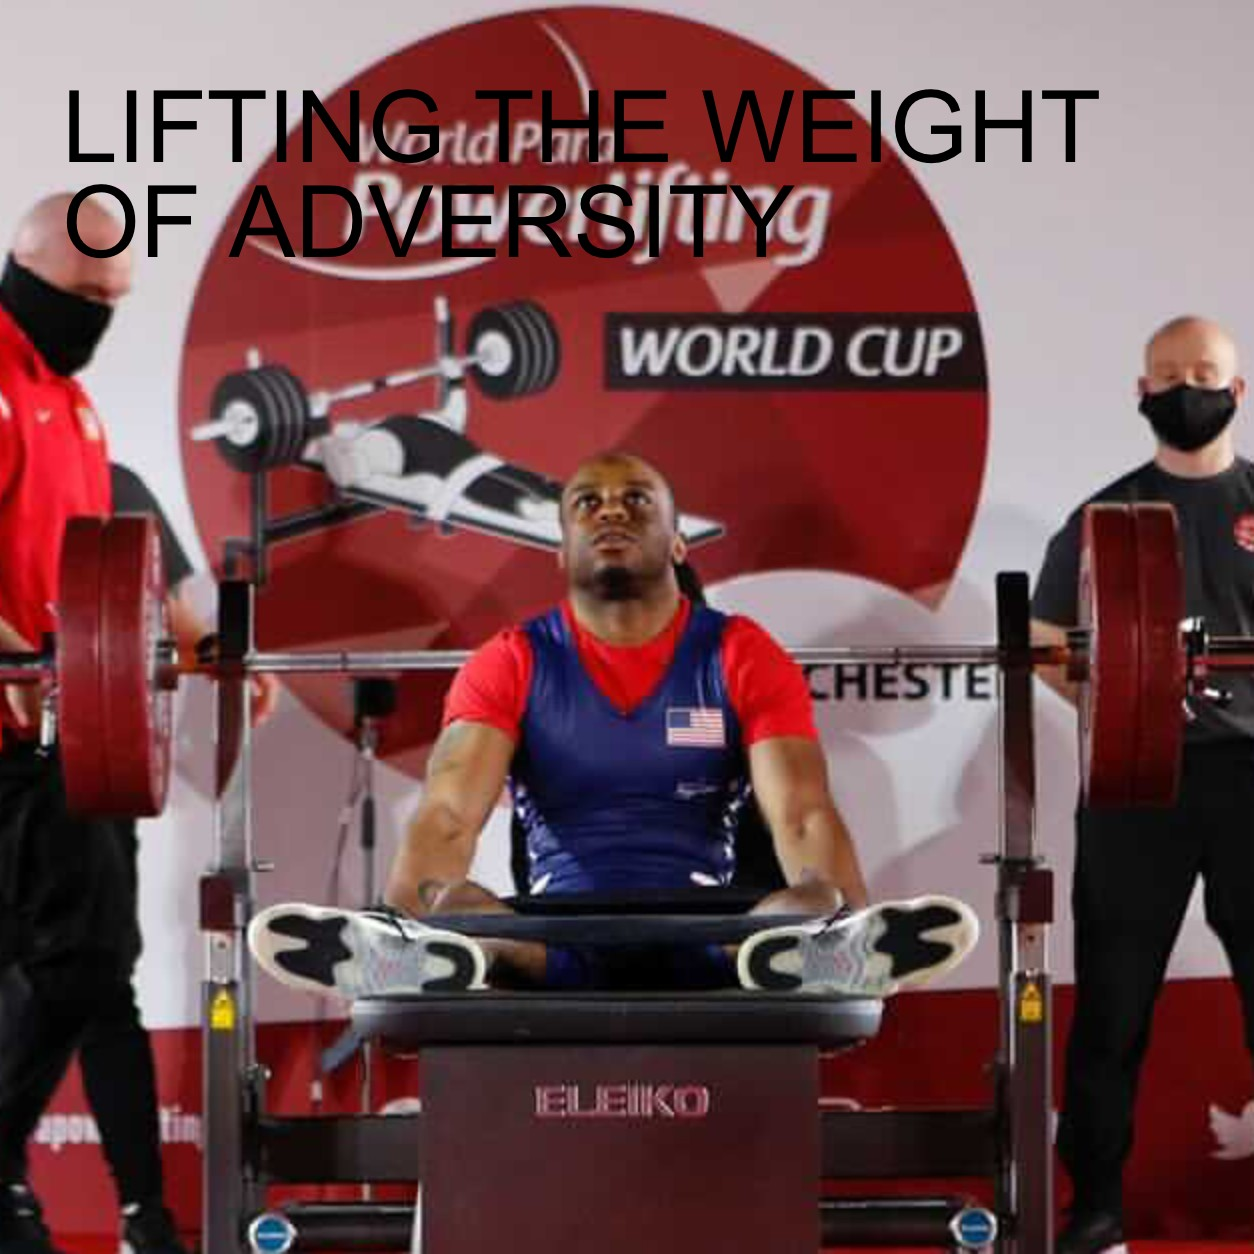 LIFTING THE WEIGHT OF ADVERSITY